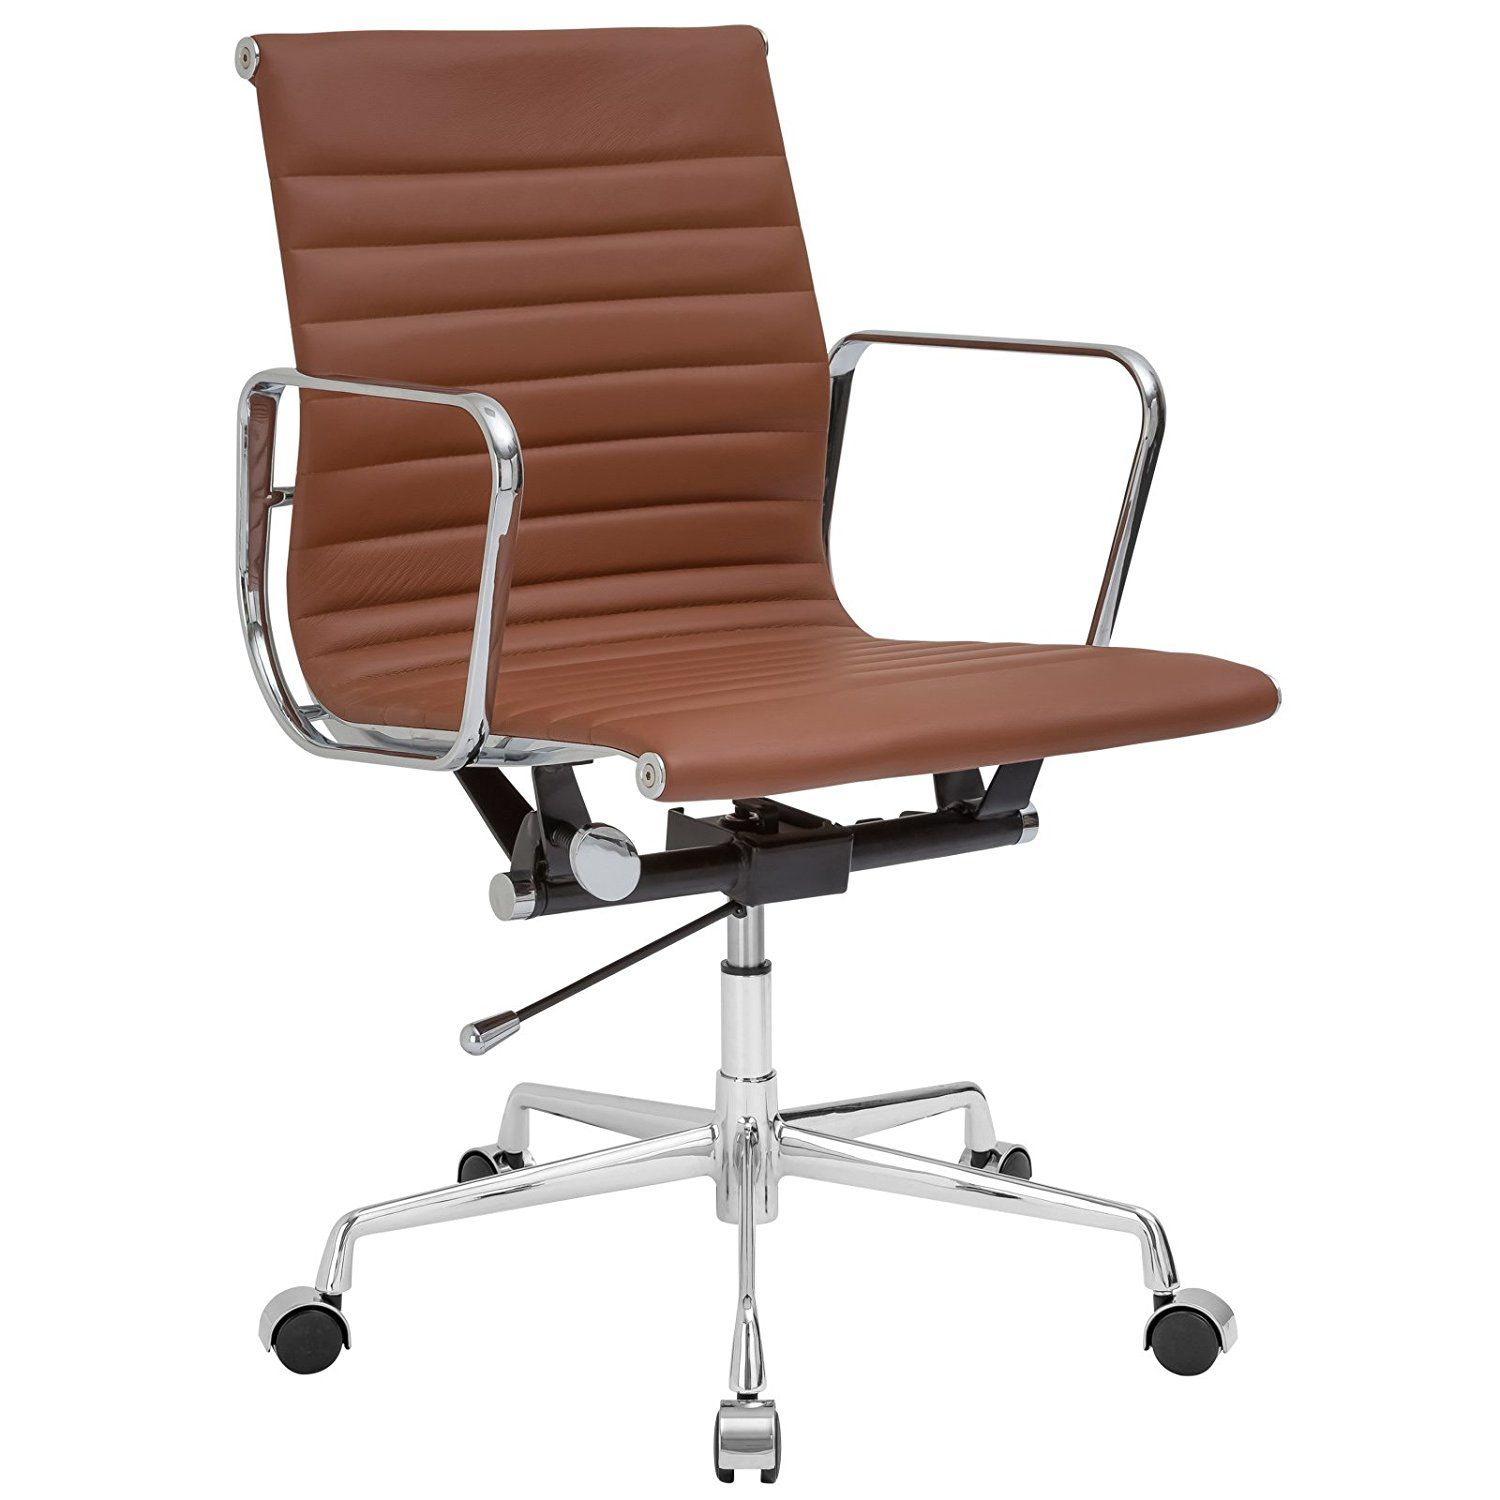 amazoncom poly and bark ribbed office chair with italian leather terracotta